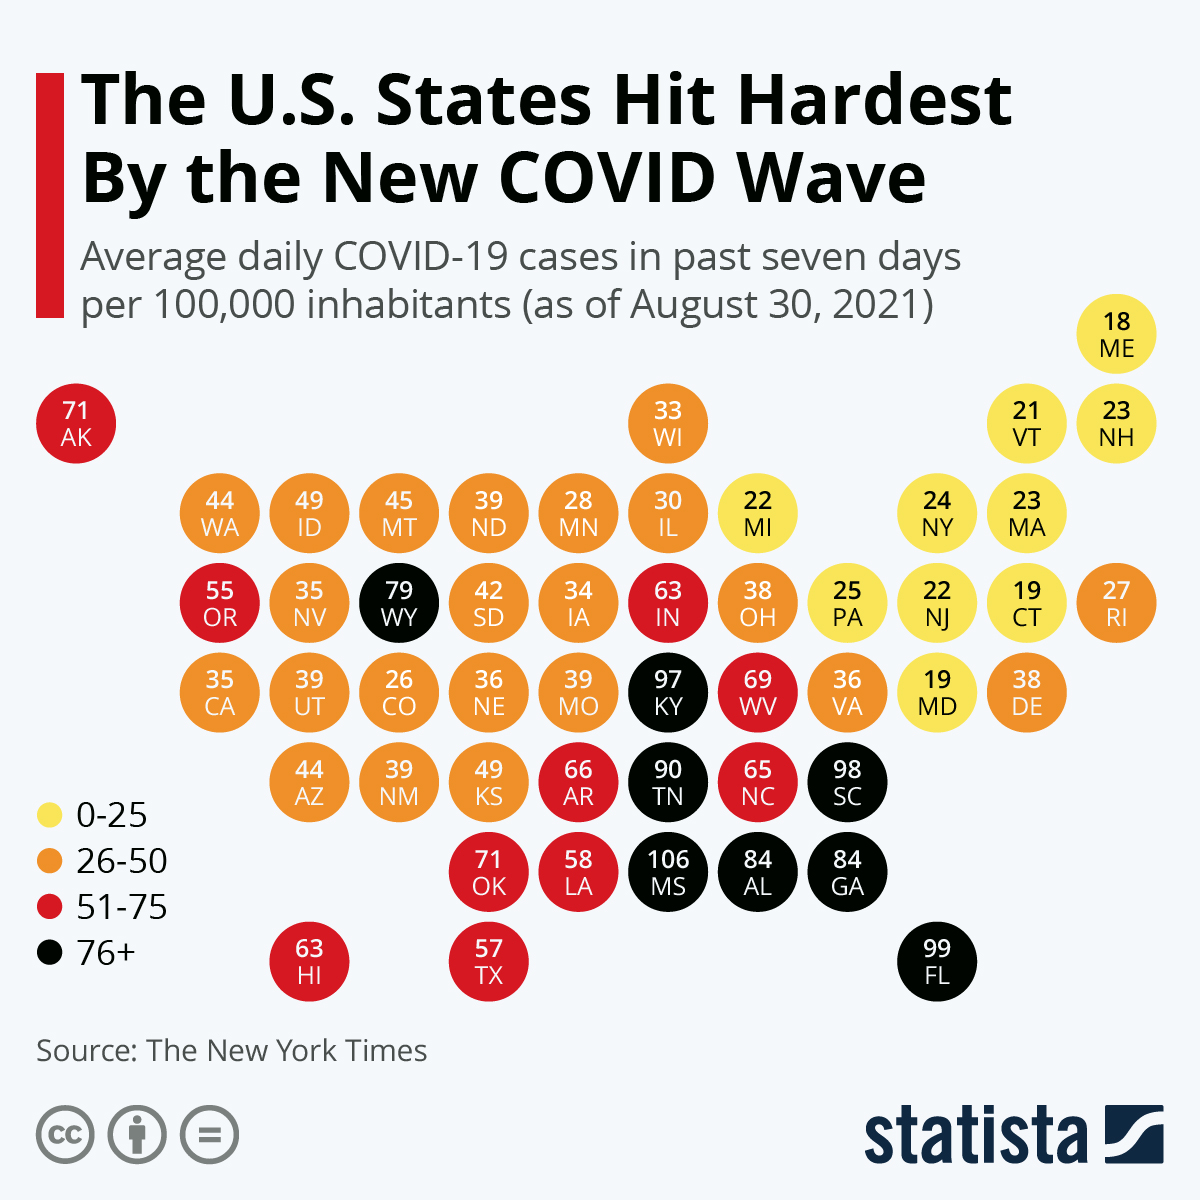 Infographic: The U.S. States Hit Hardest By Covid-19 | Statista